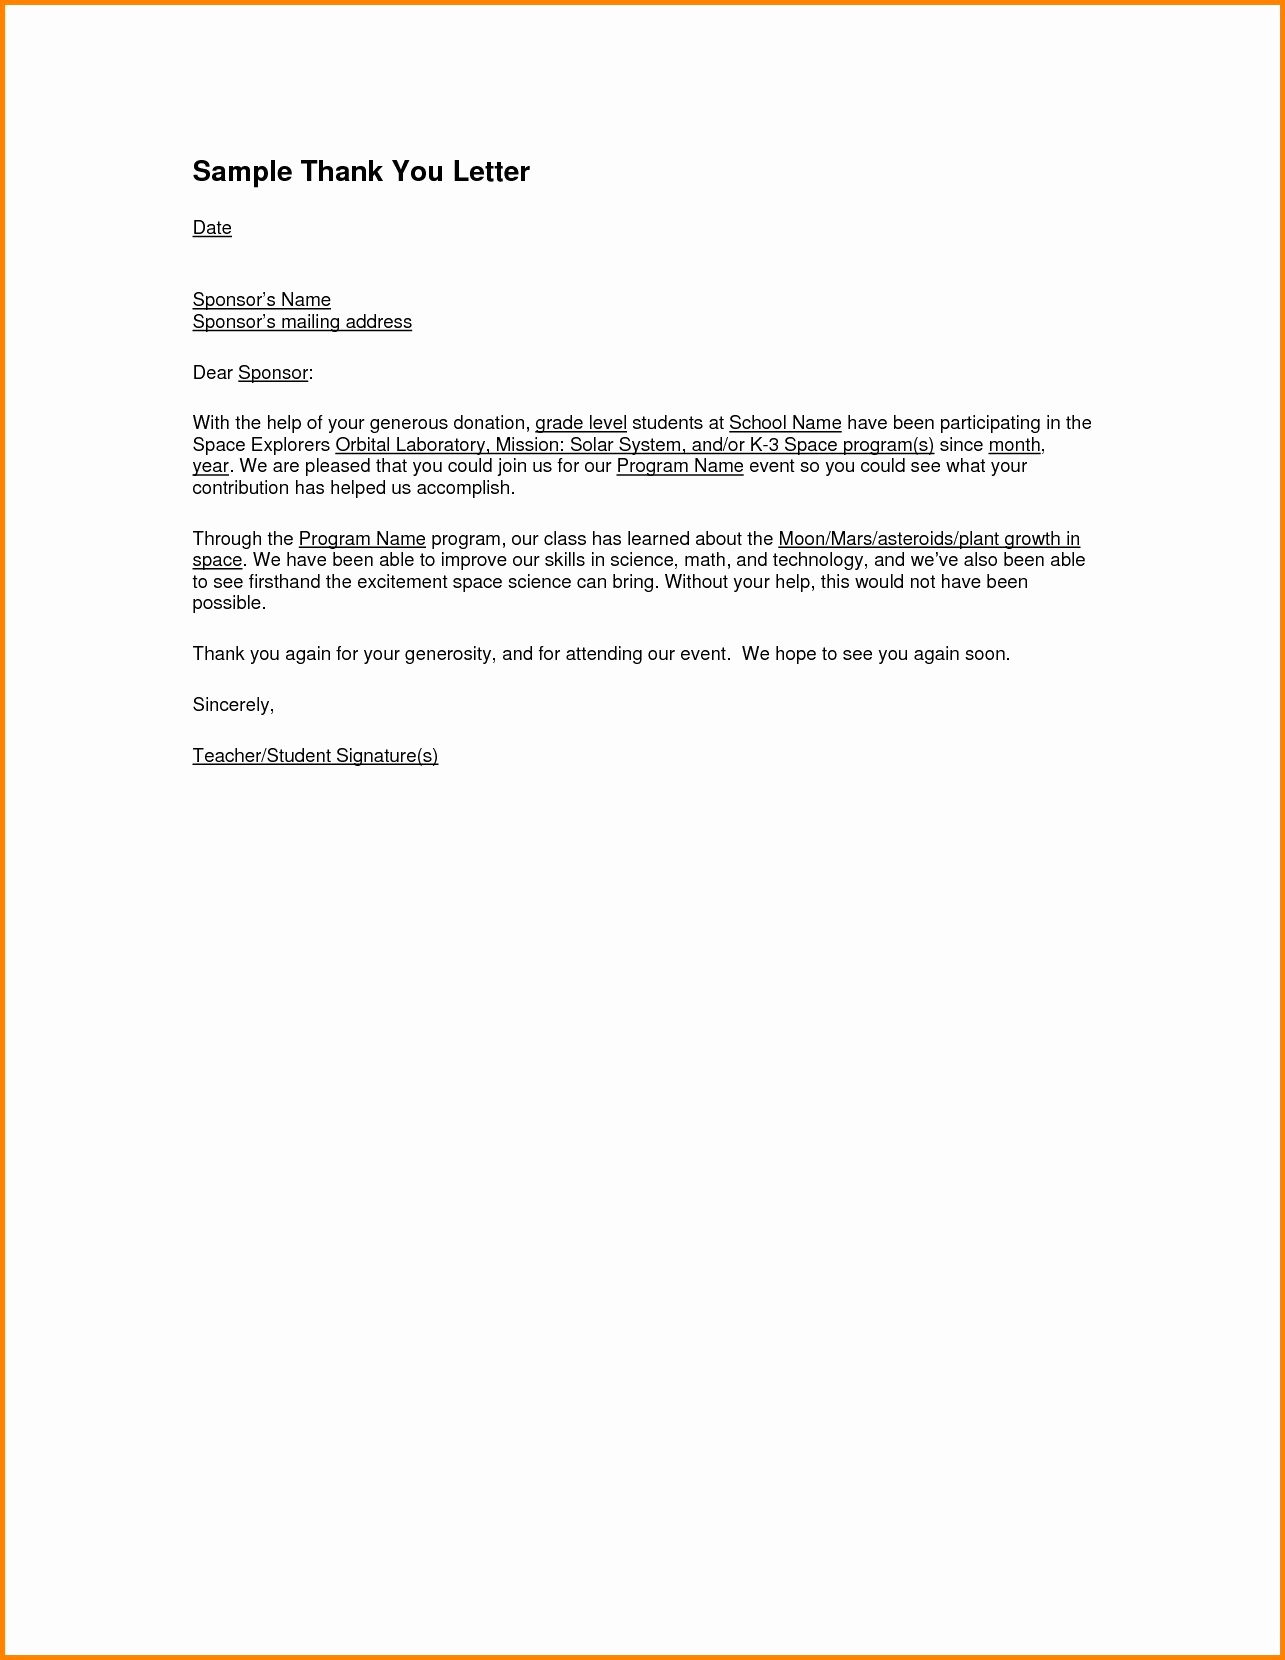 Sponsorship Thank You Letter Template - Example Thank You Letter for Sponsorship New How to Write A